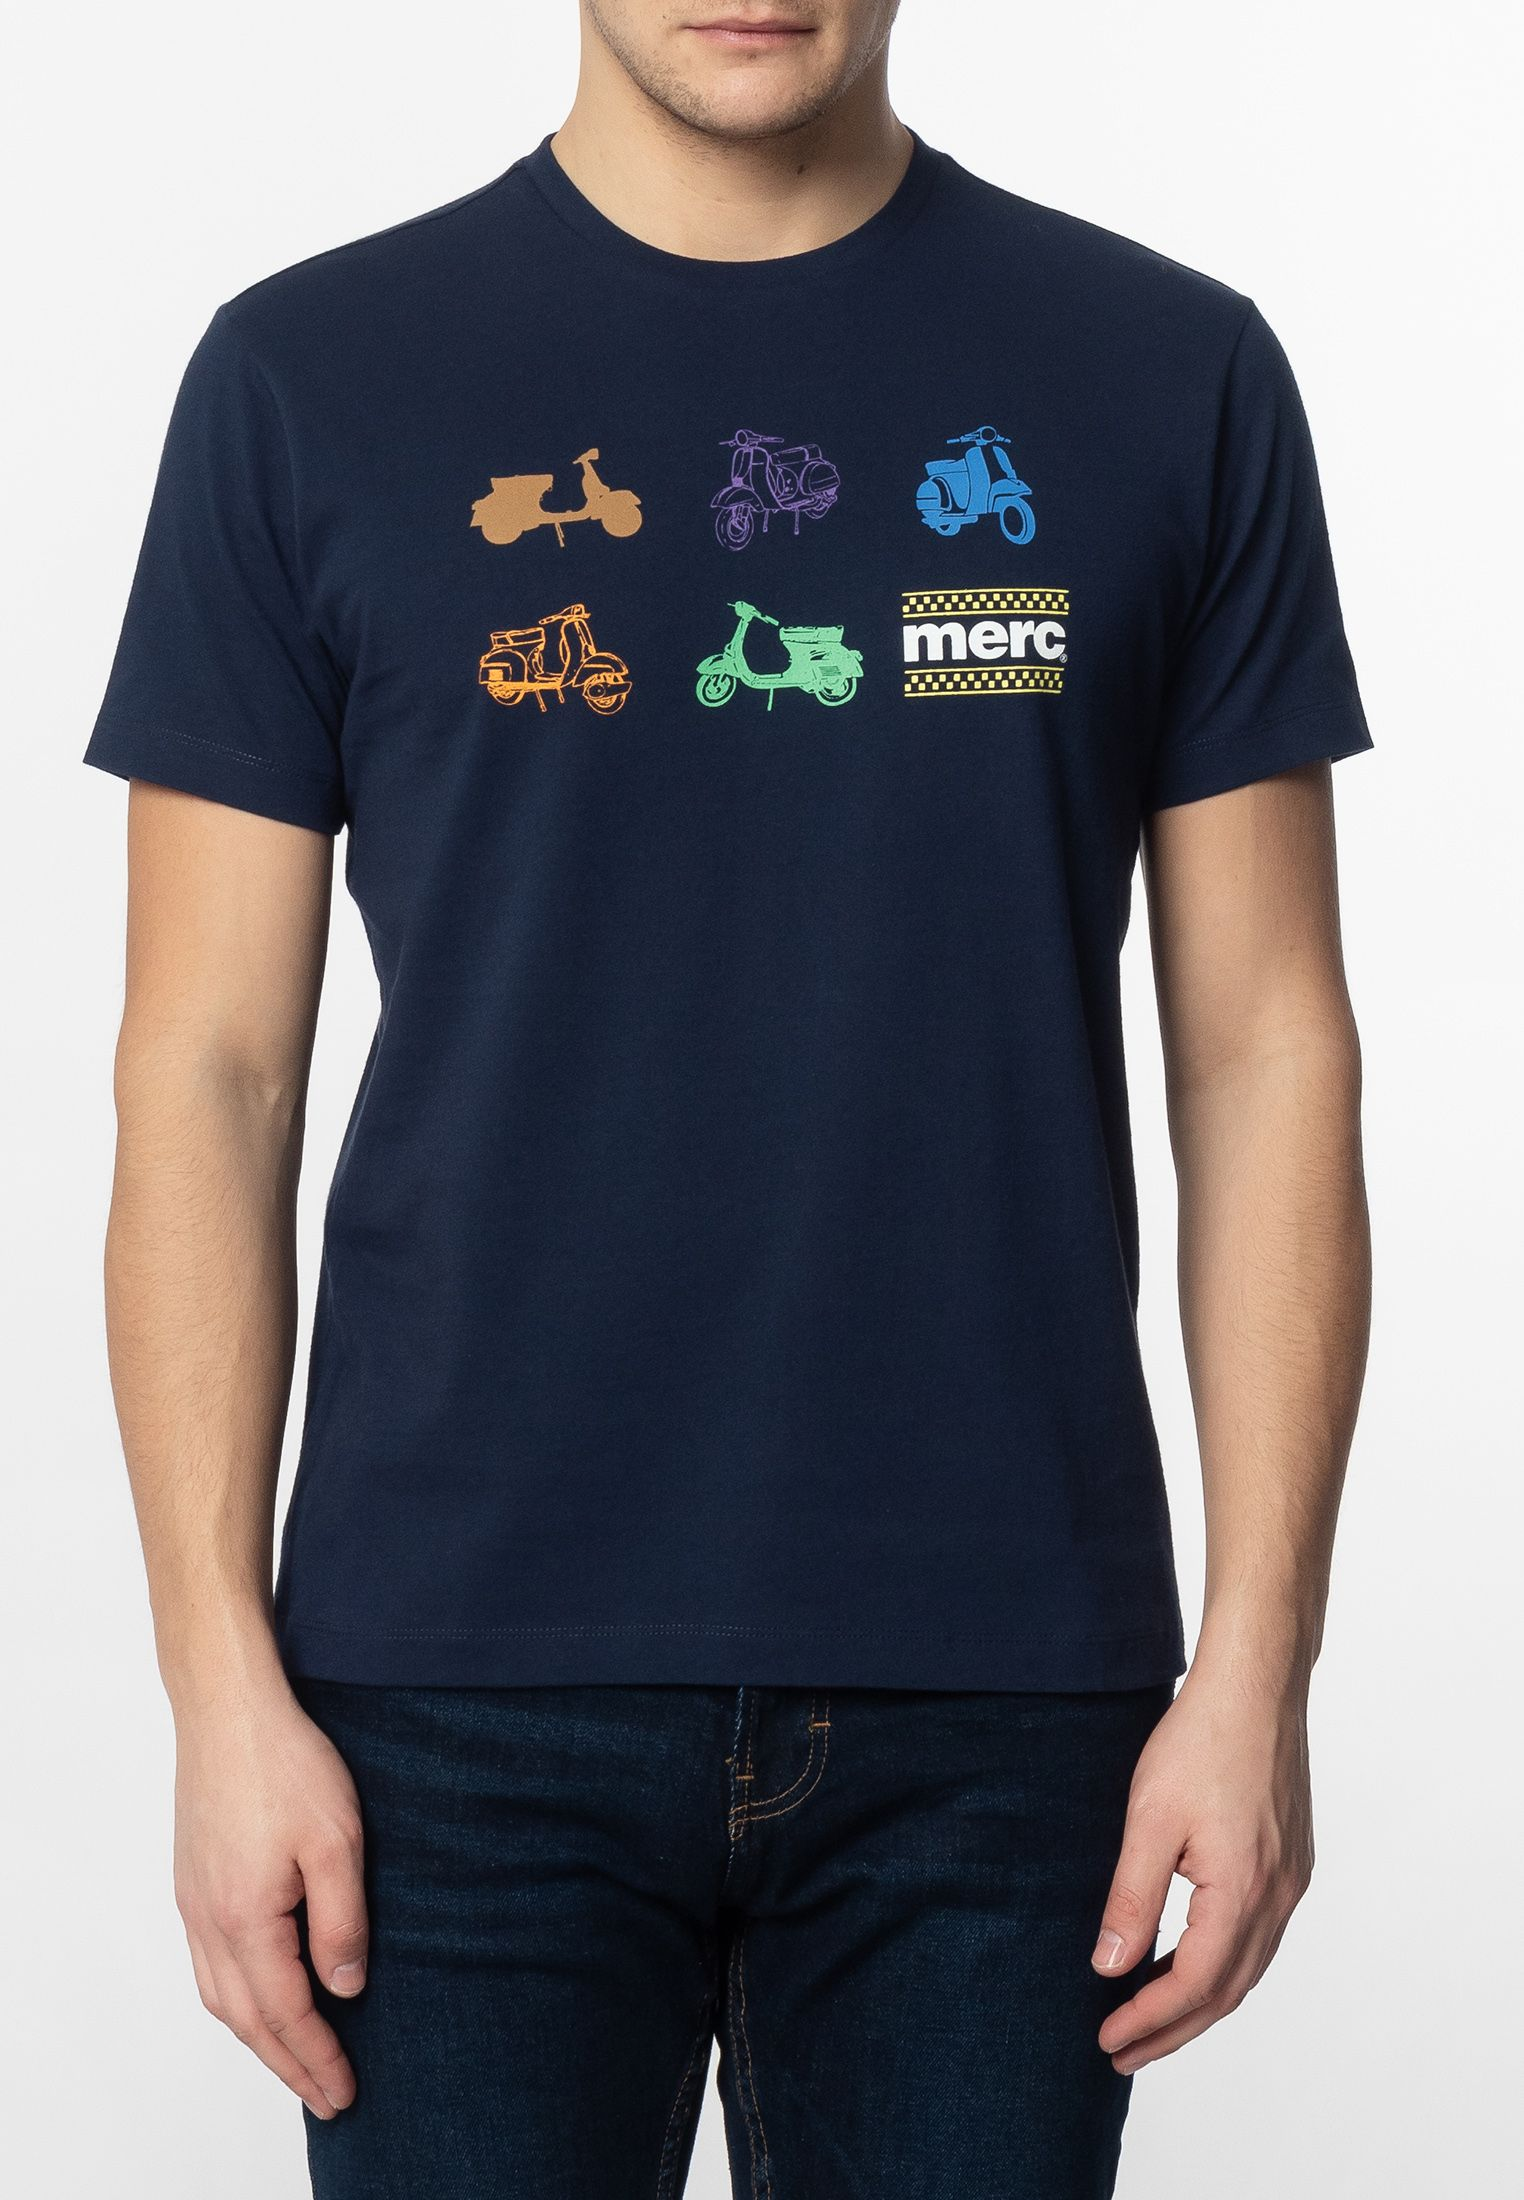 Halford Mens Cotton T-Shirt With Small Scooters Icons Print In Navy